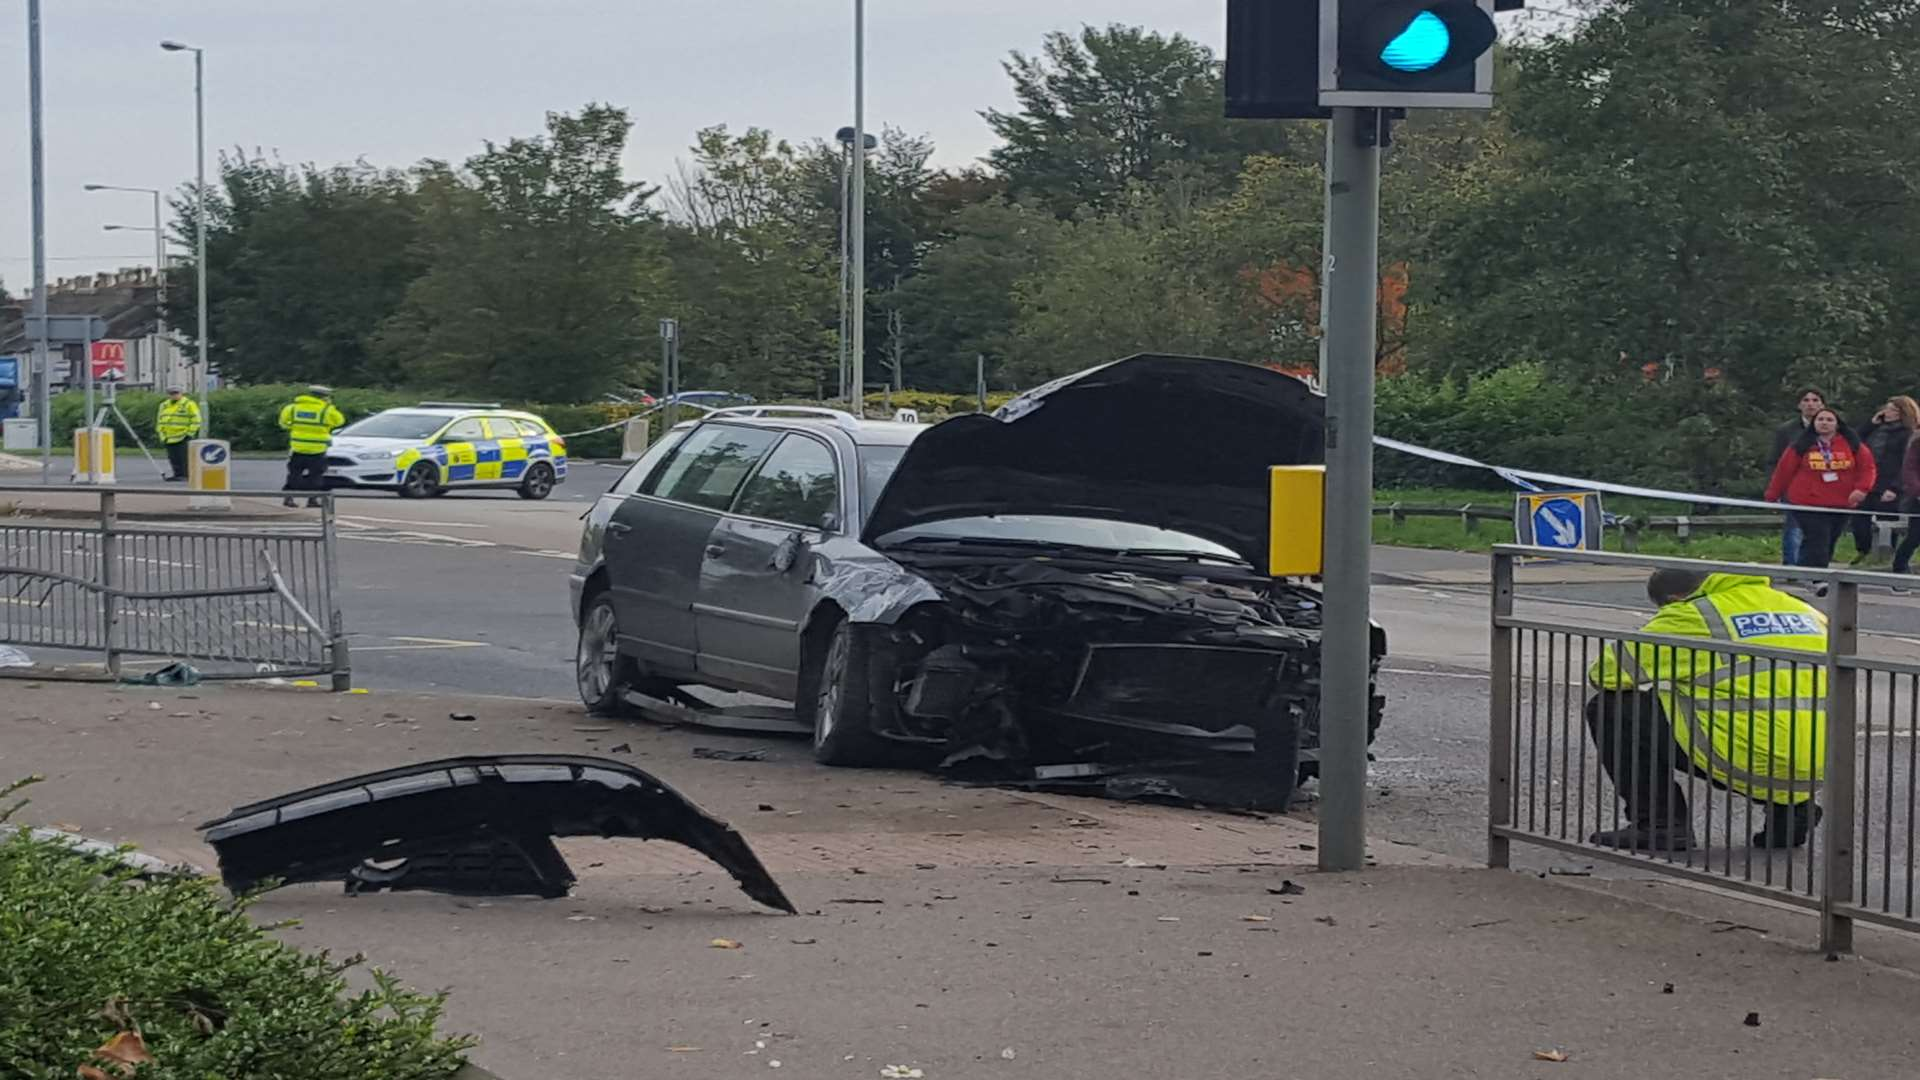 The wreckage of the car in Sturry Road